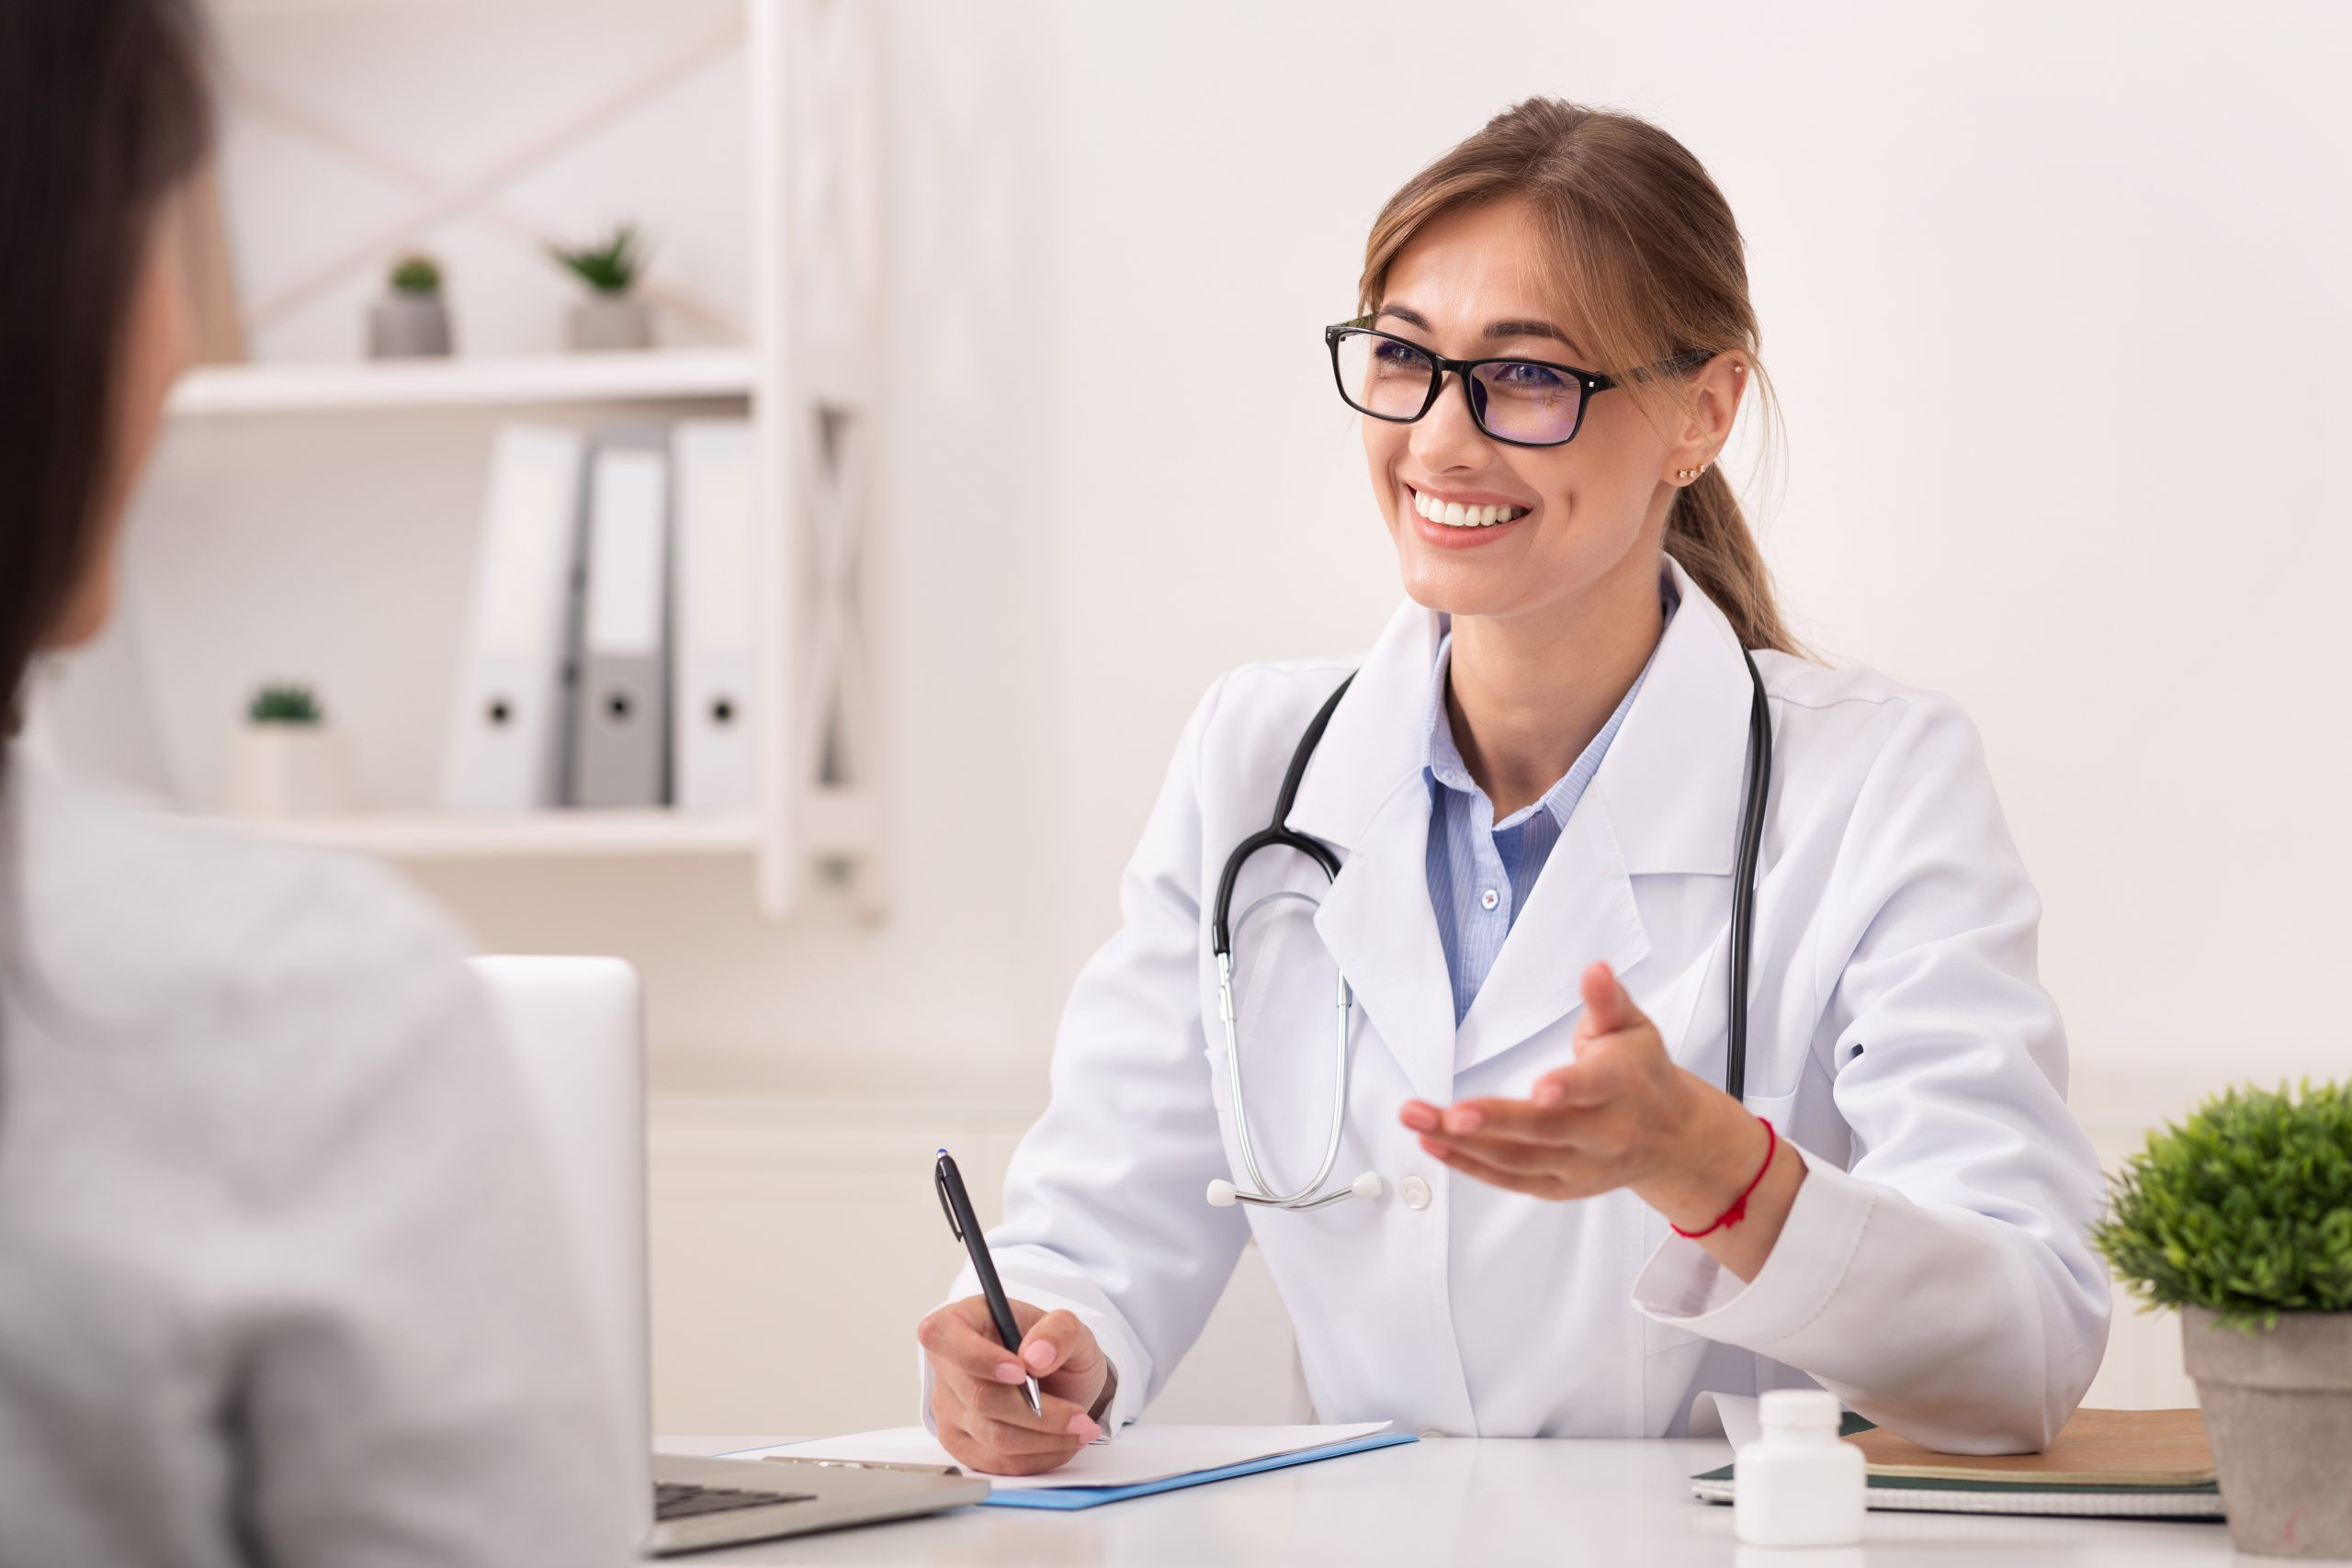 Smiling Doctor Woman Talking With Unrecognizable Patient Sitting In Office